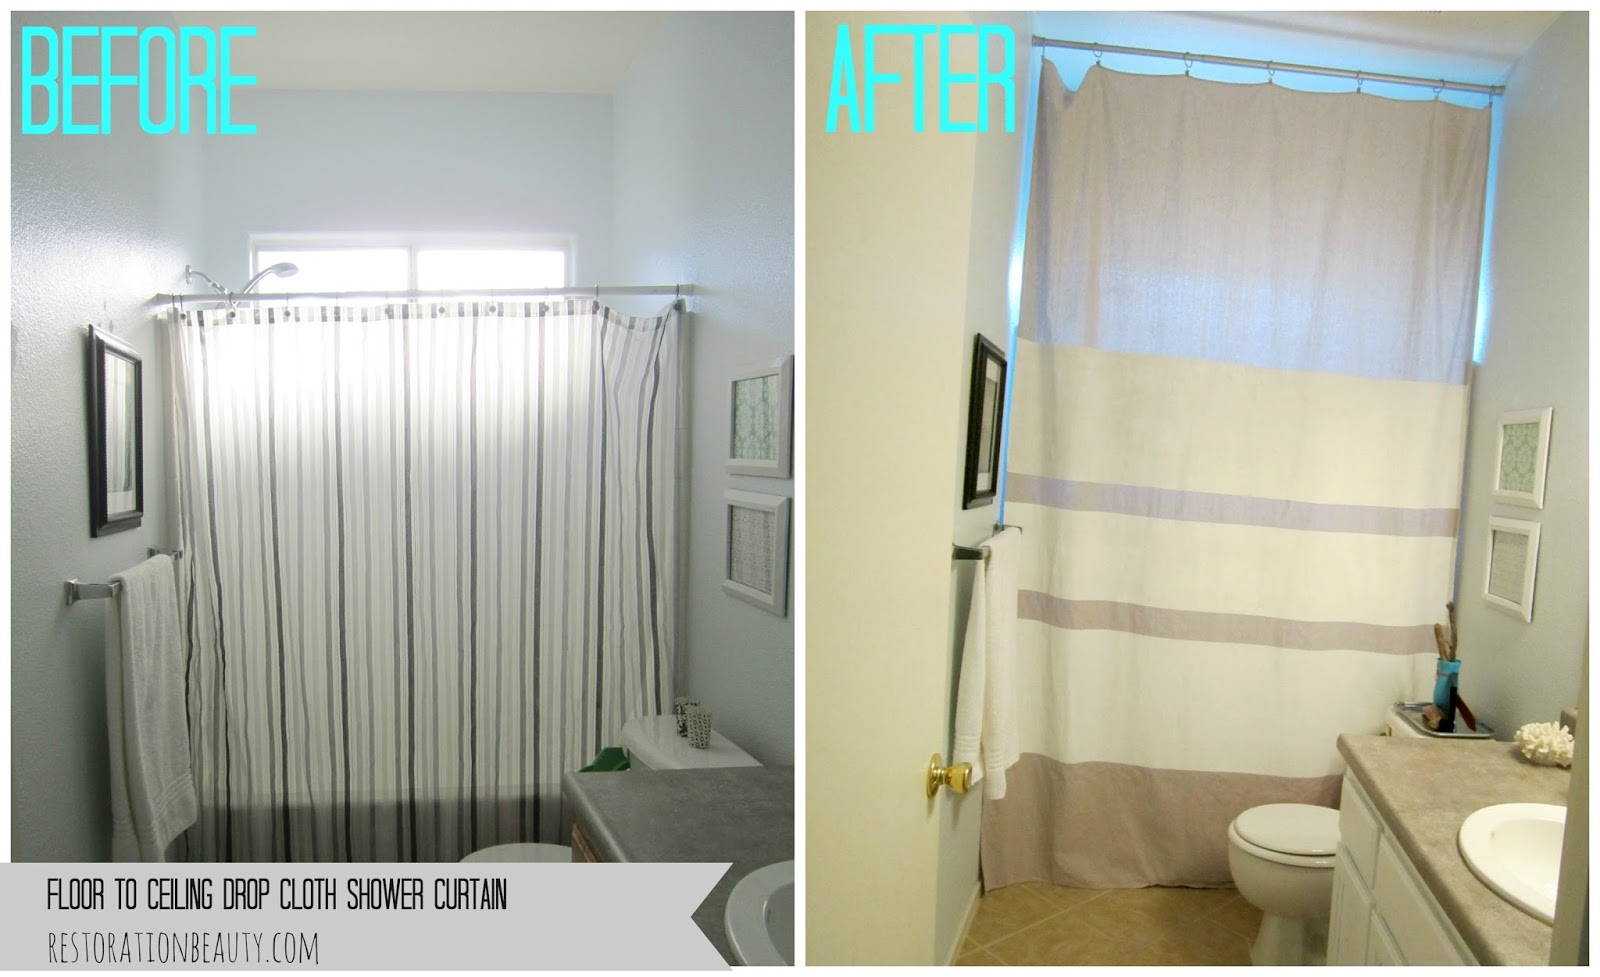 Drop Cloth Curtains Lowes Restoration Beauty Floor To Ceiling Drop Cloth Shower Curtain